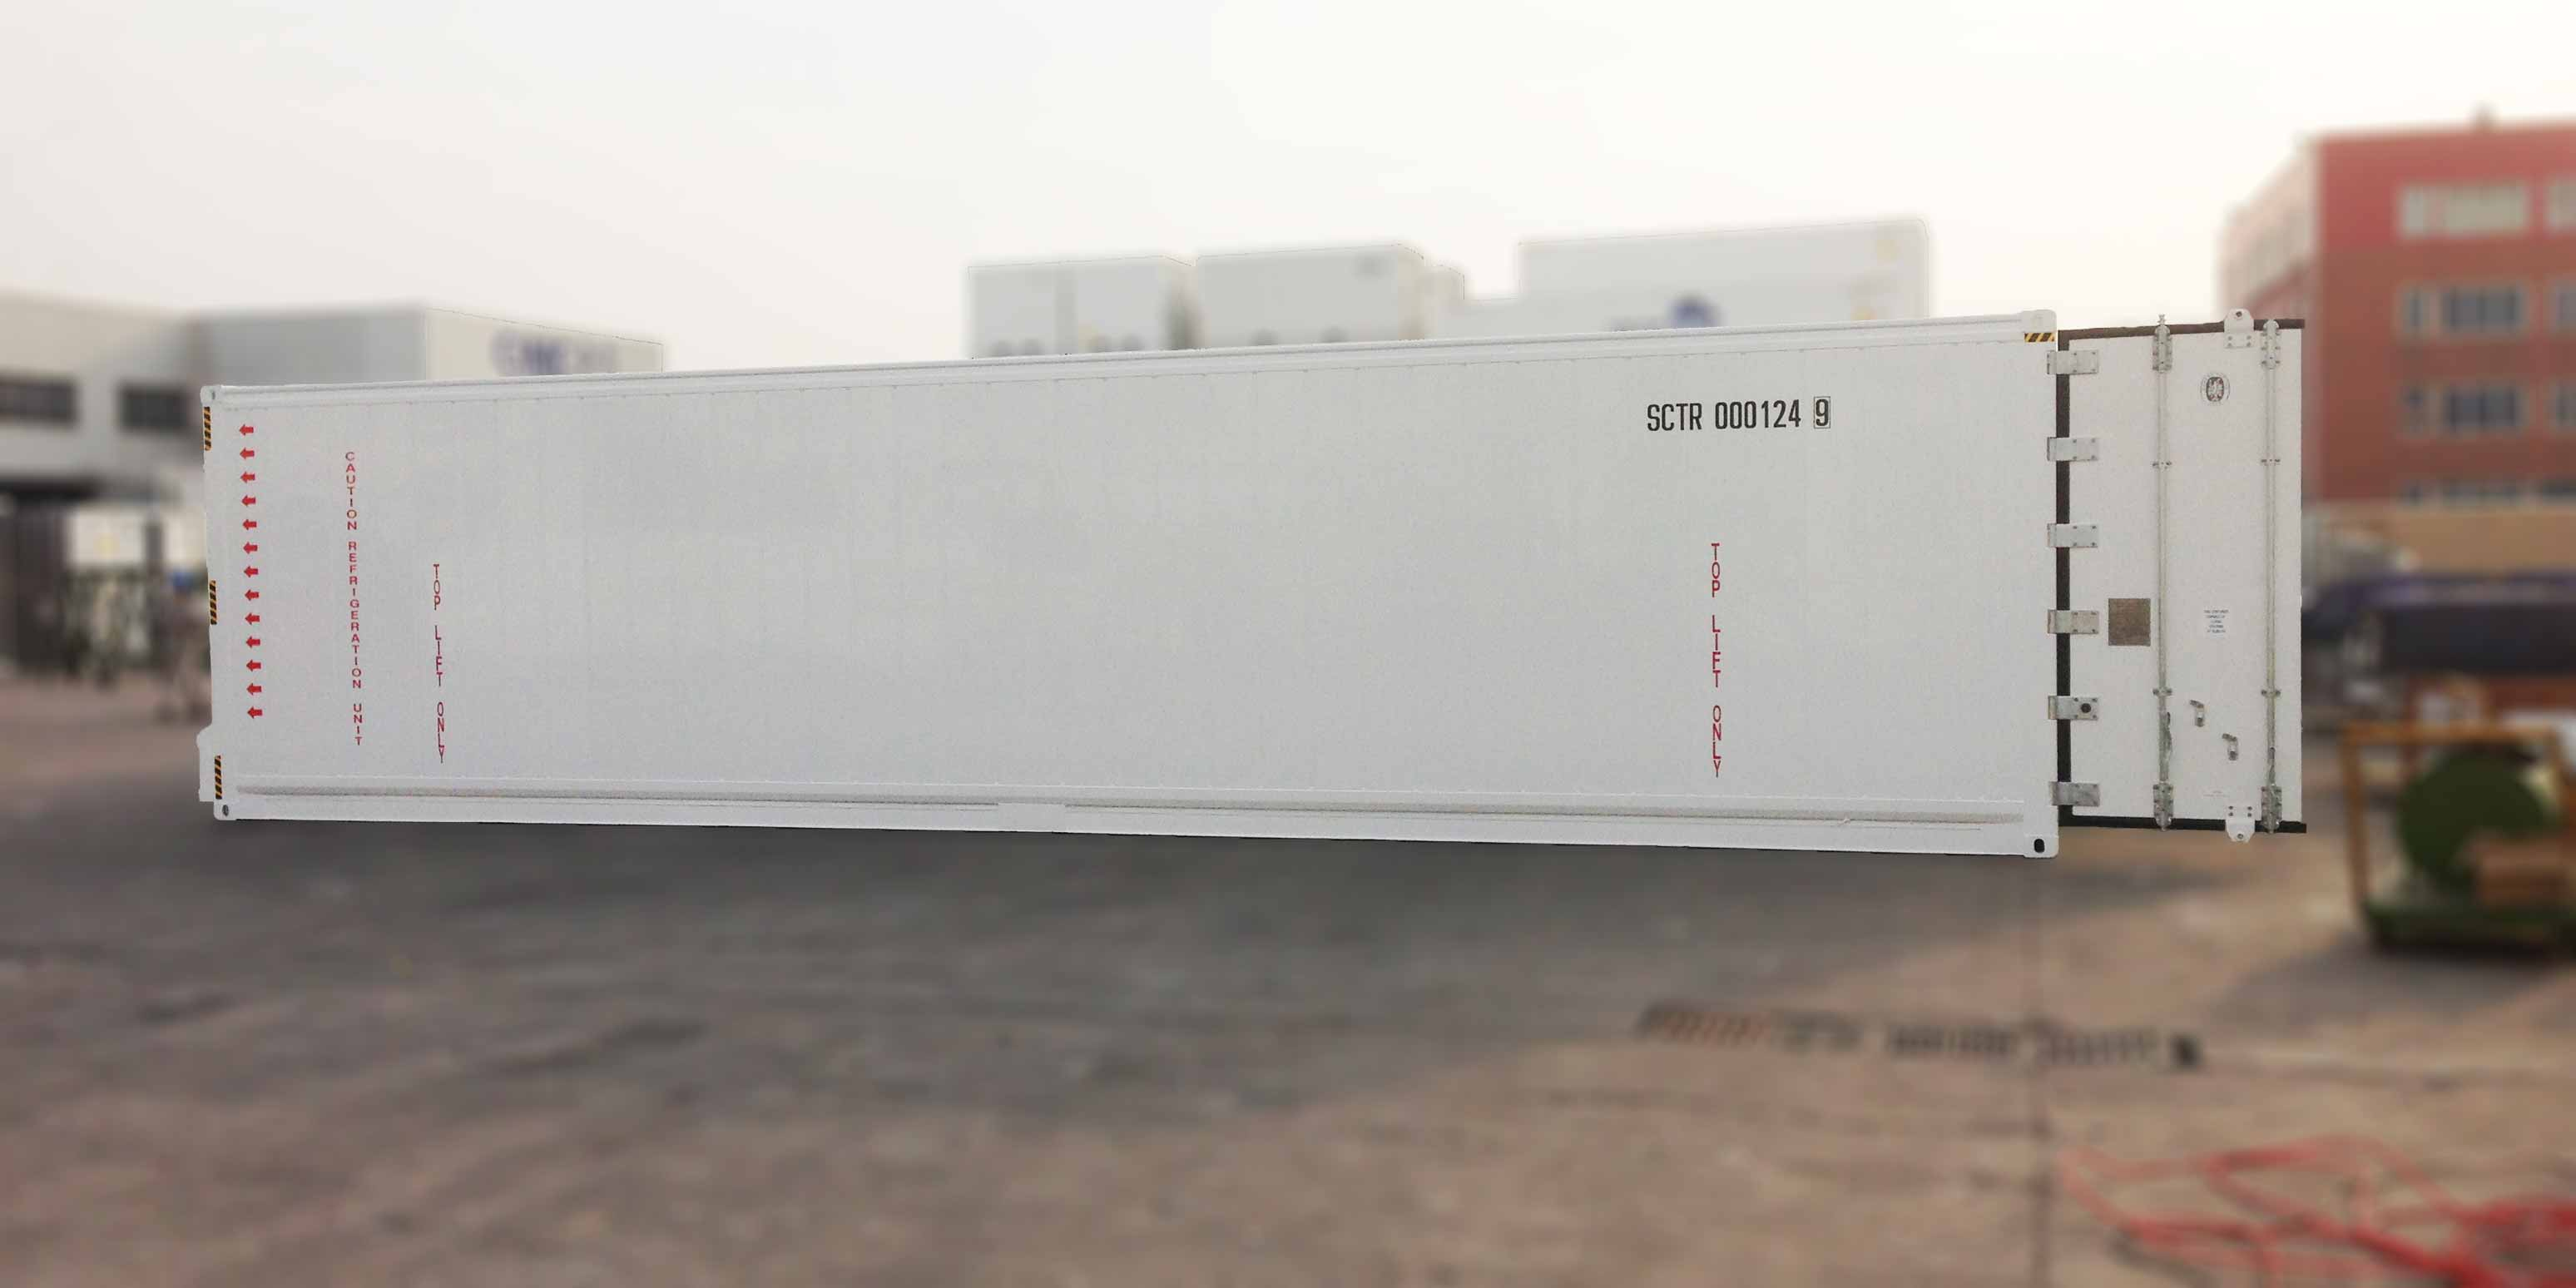 40' refrigerated container, heavy duty construction